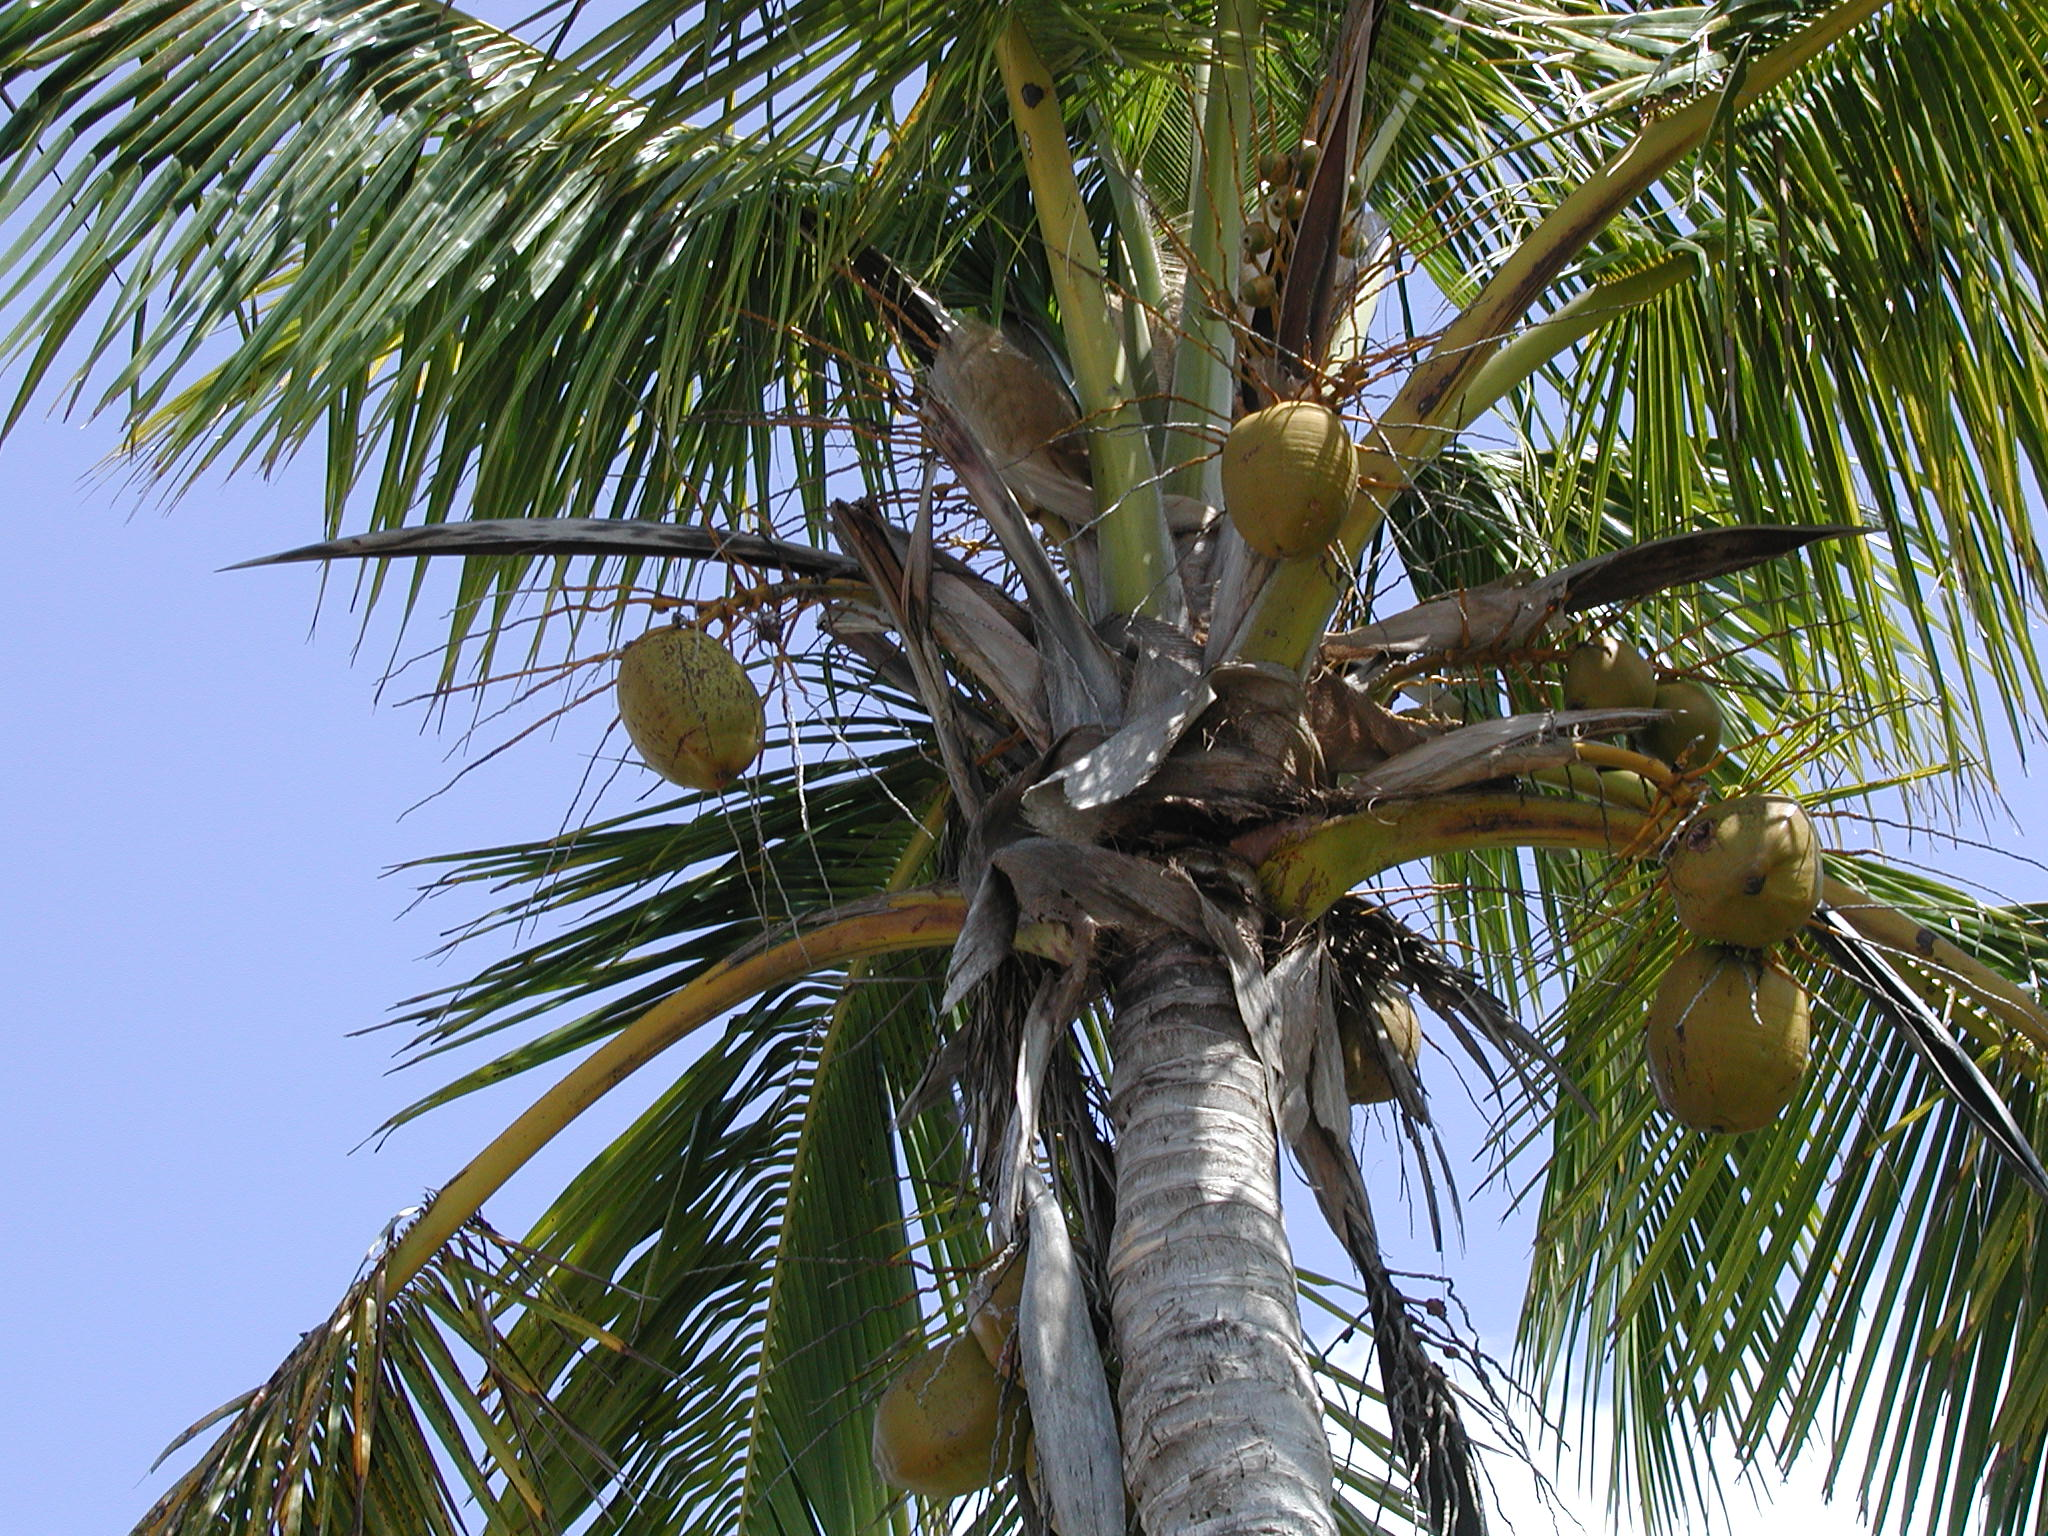 coconut tree Coconut tree is a plant that belongs to the family arecaceae there are over 150 species of coconuts that can be found in 80 different countries throughout the world coconut tree grows only in the tropical climate this plant live on the sandy soil, requires a lot of sunlight and regular rainfalls.